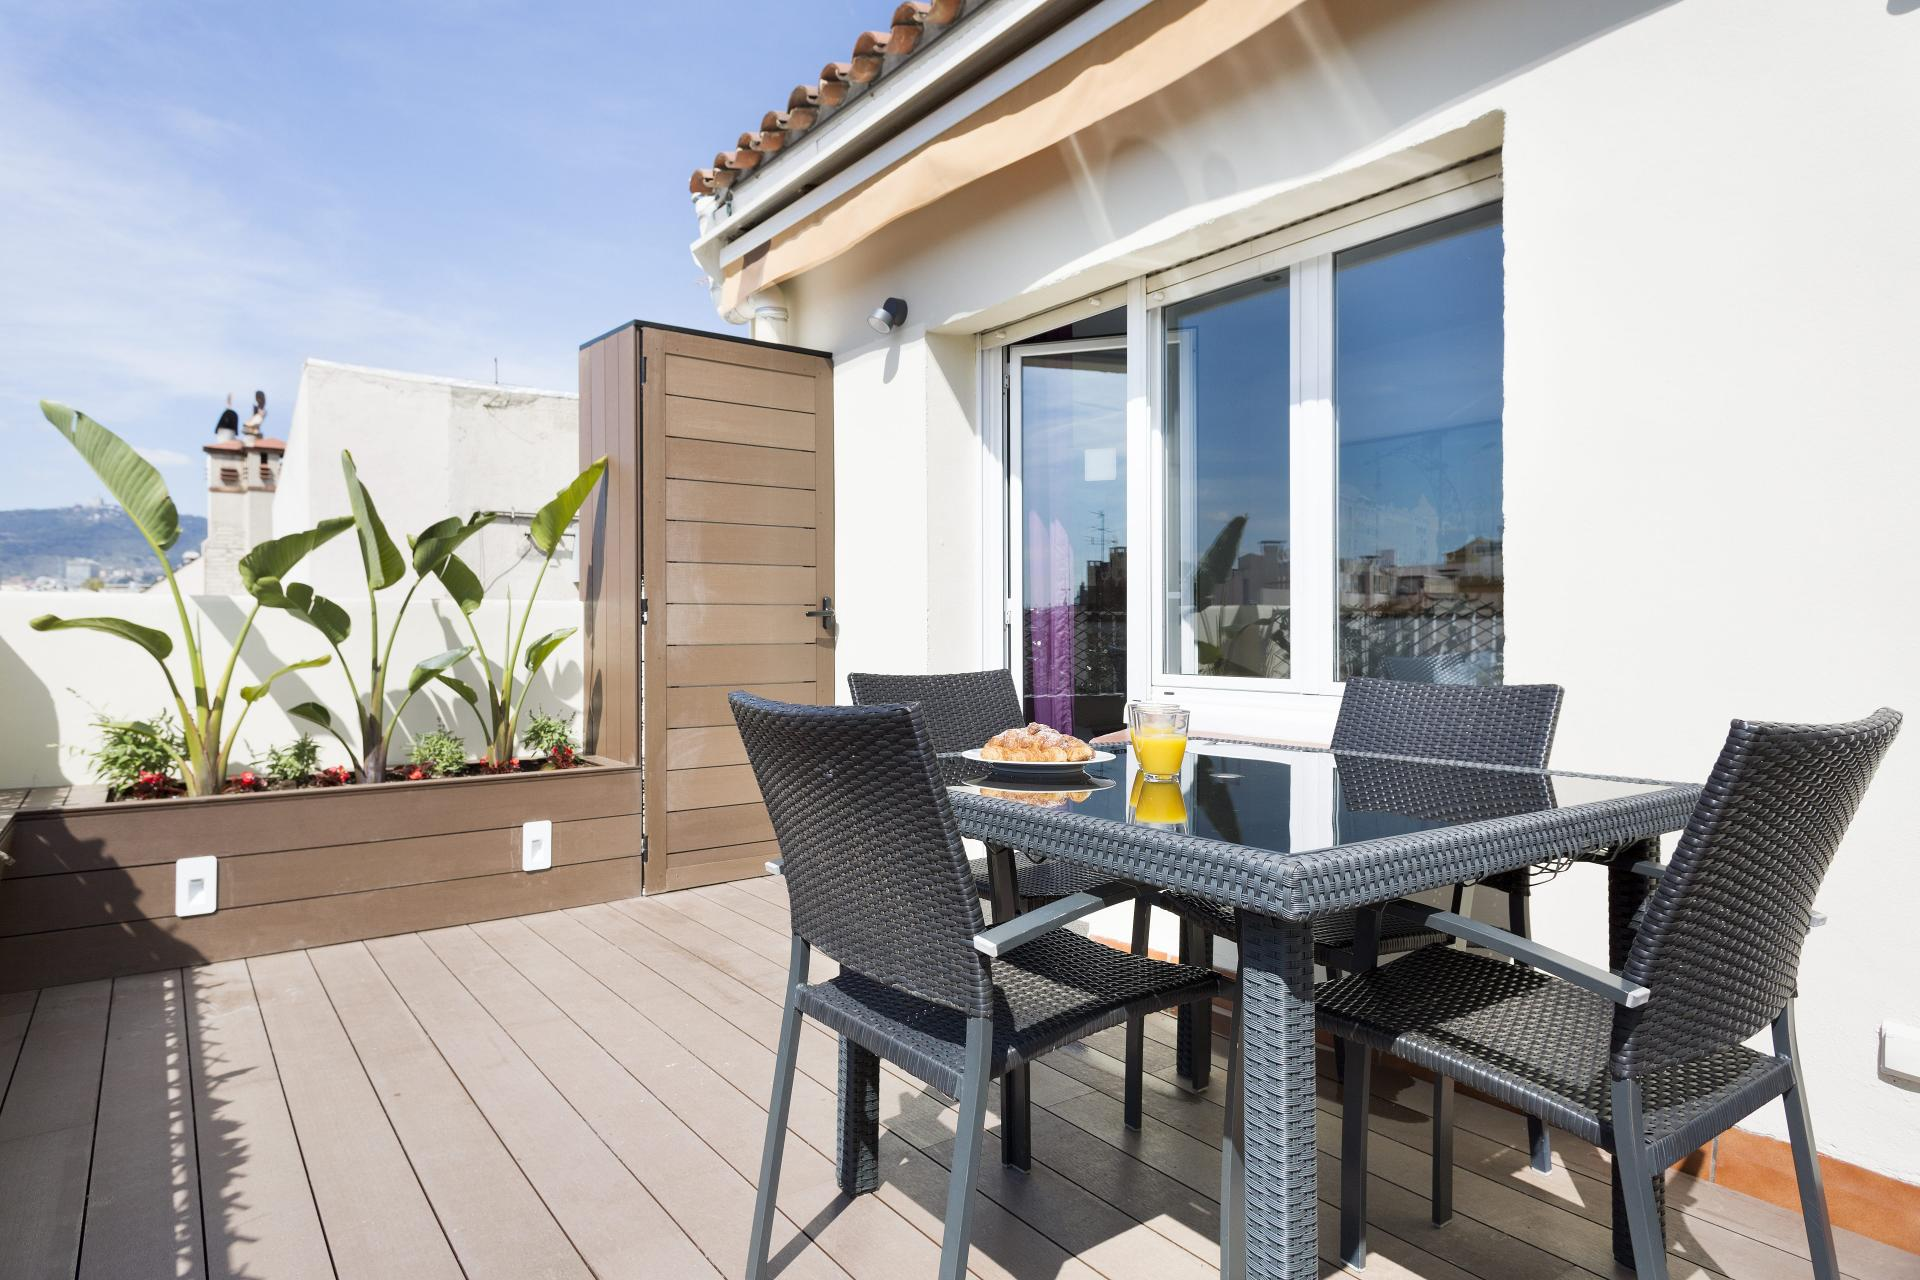 Terrace at Sunny Serviced Apartments, Eixample, Barcelona - Citybase Apartments